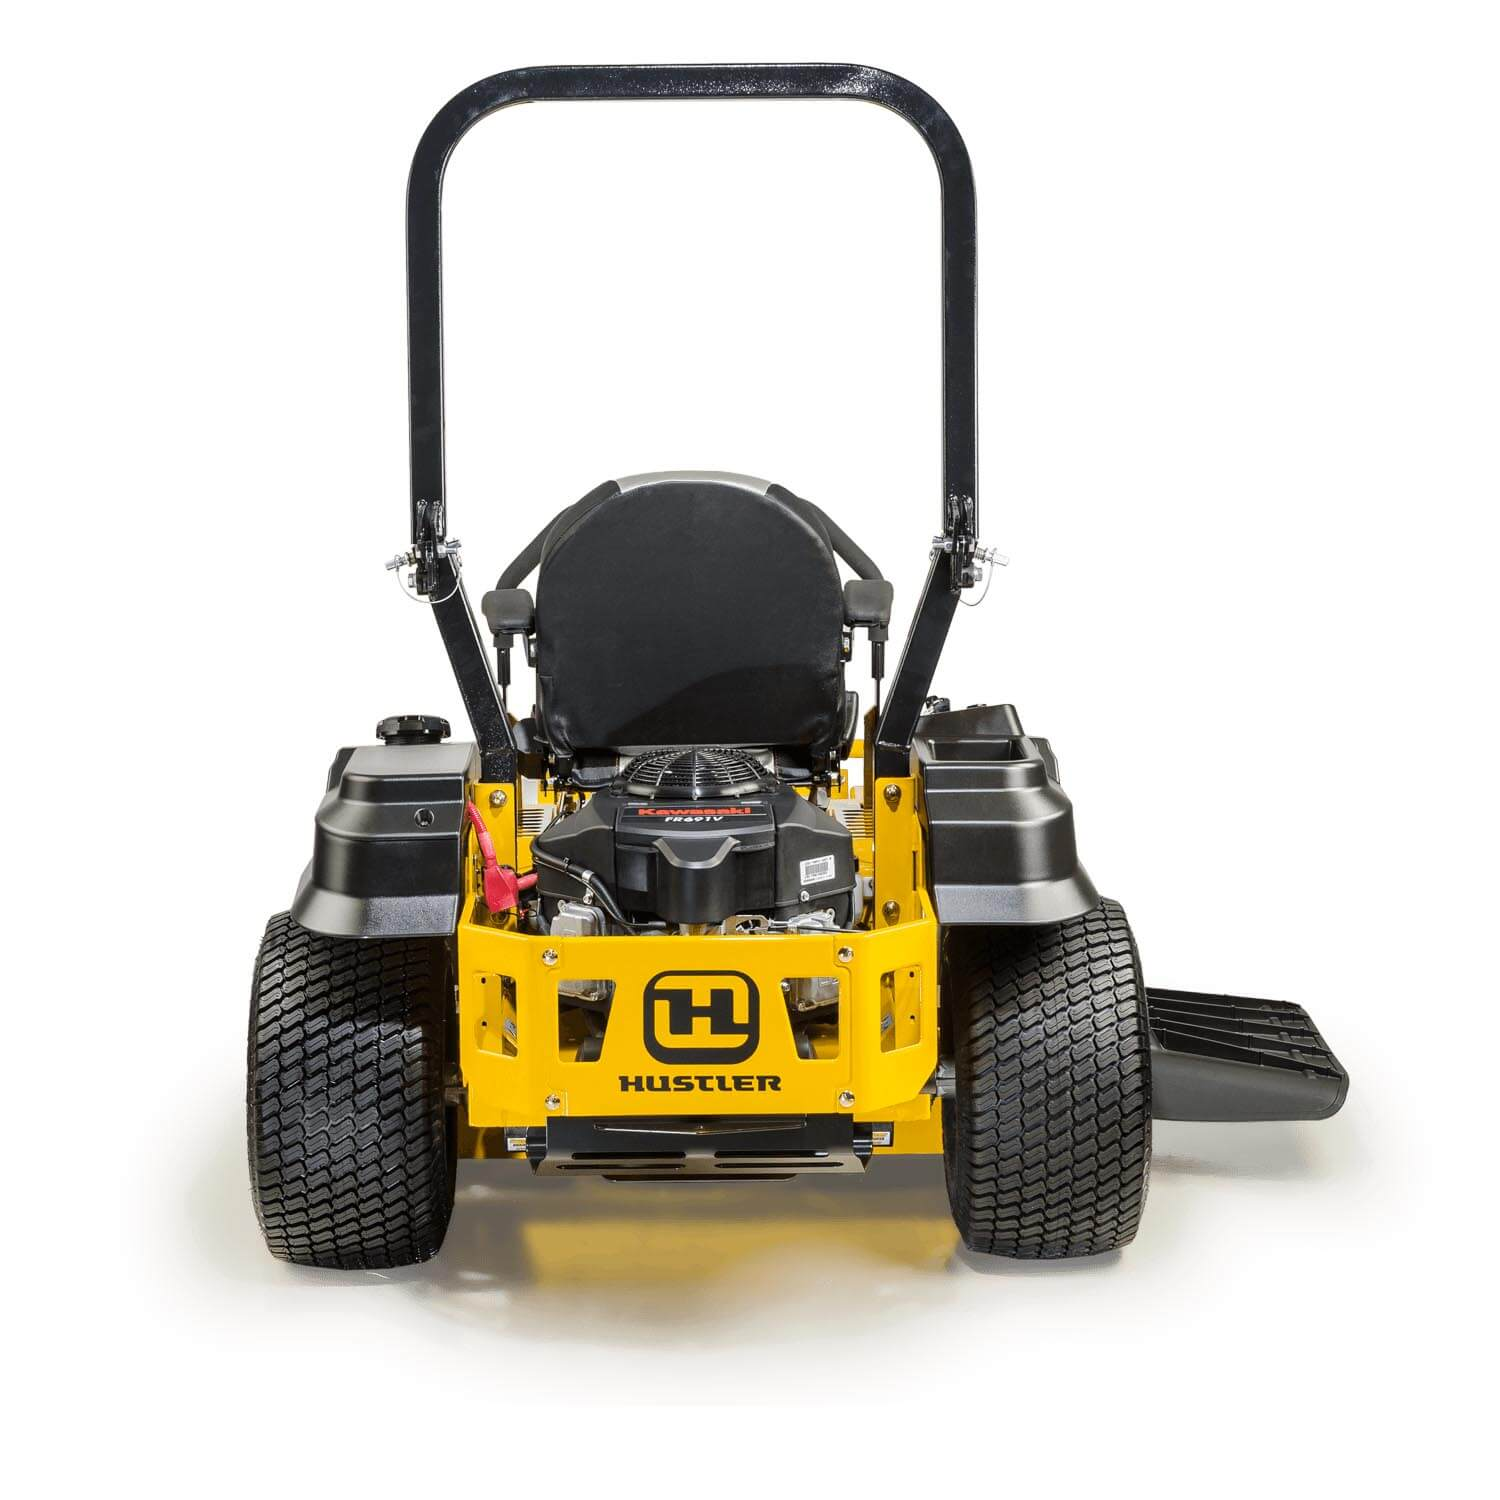 Image of rear of a yellow riding mower